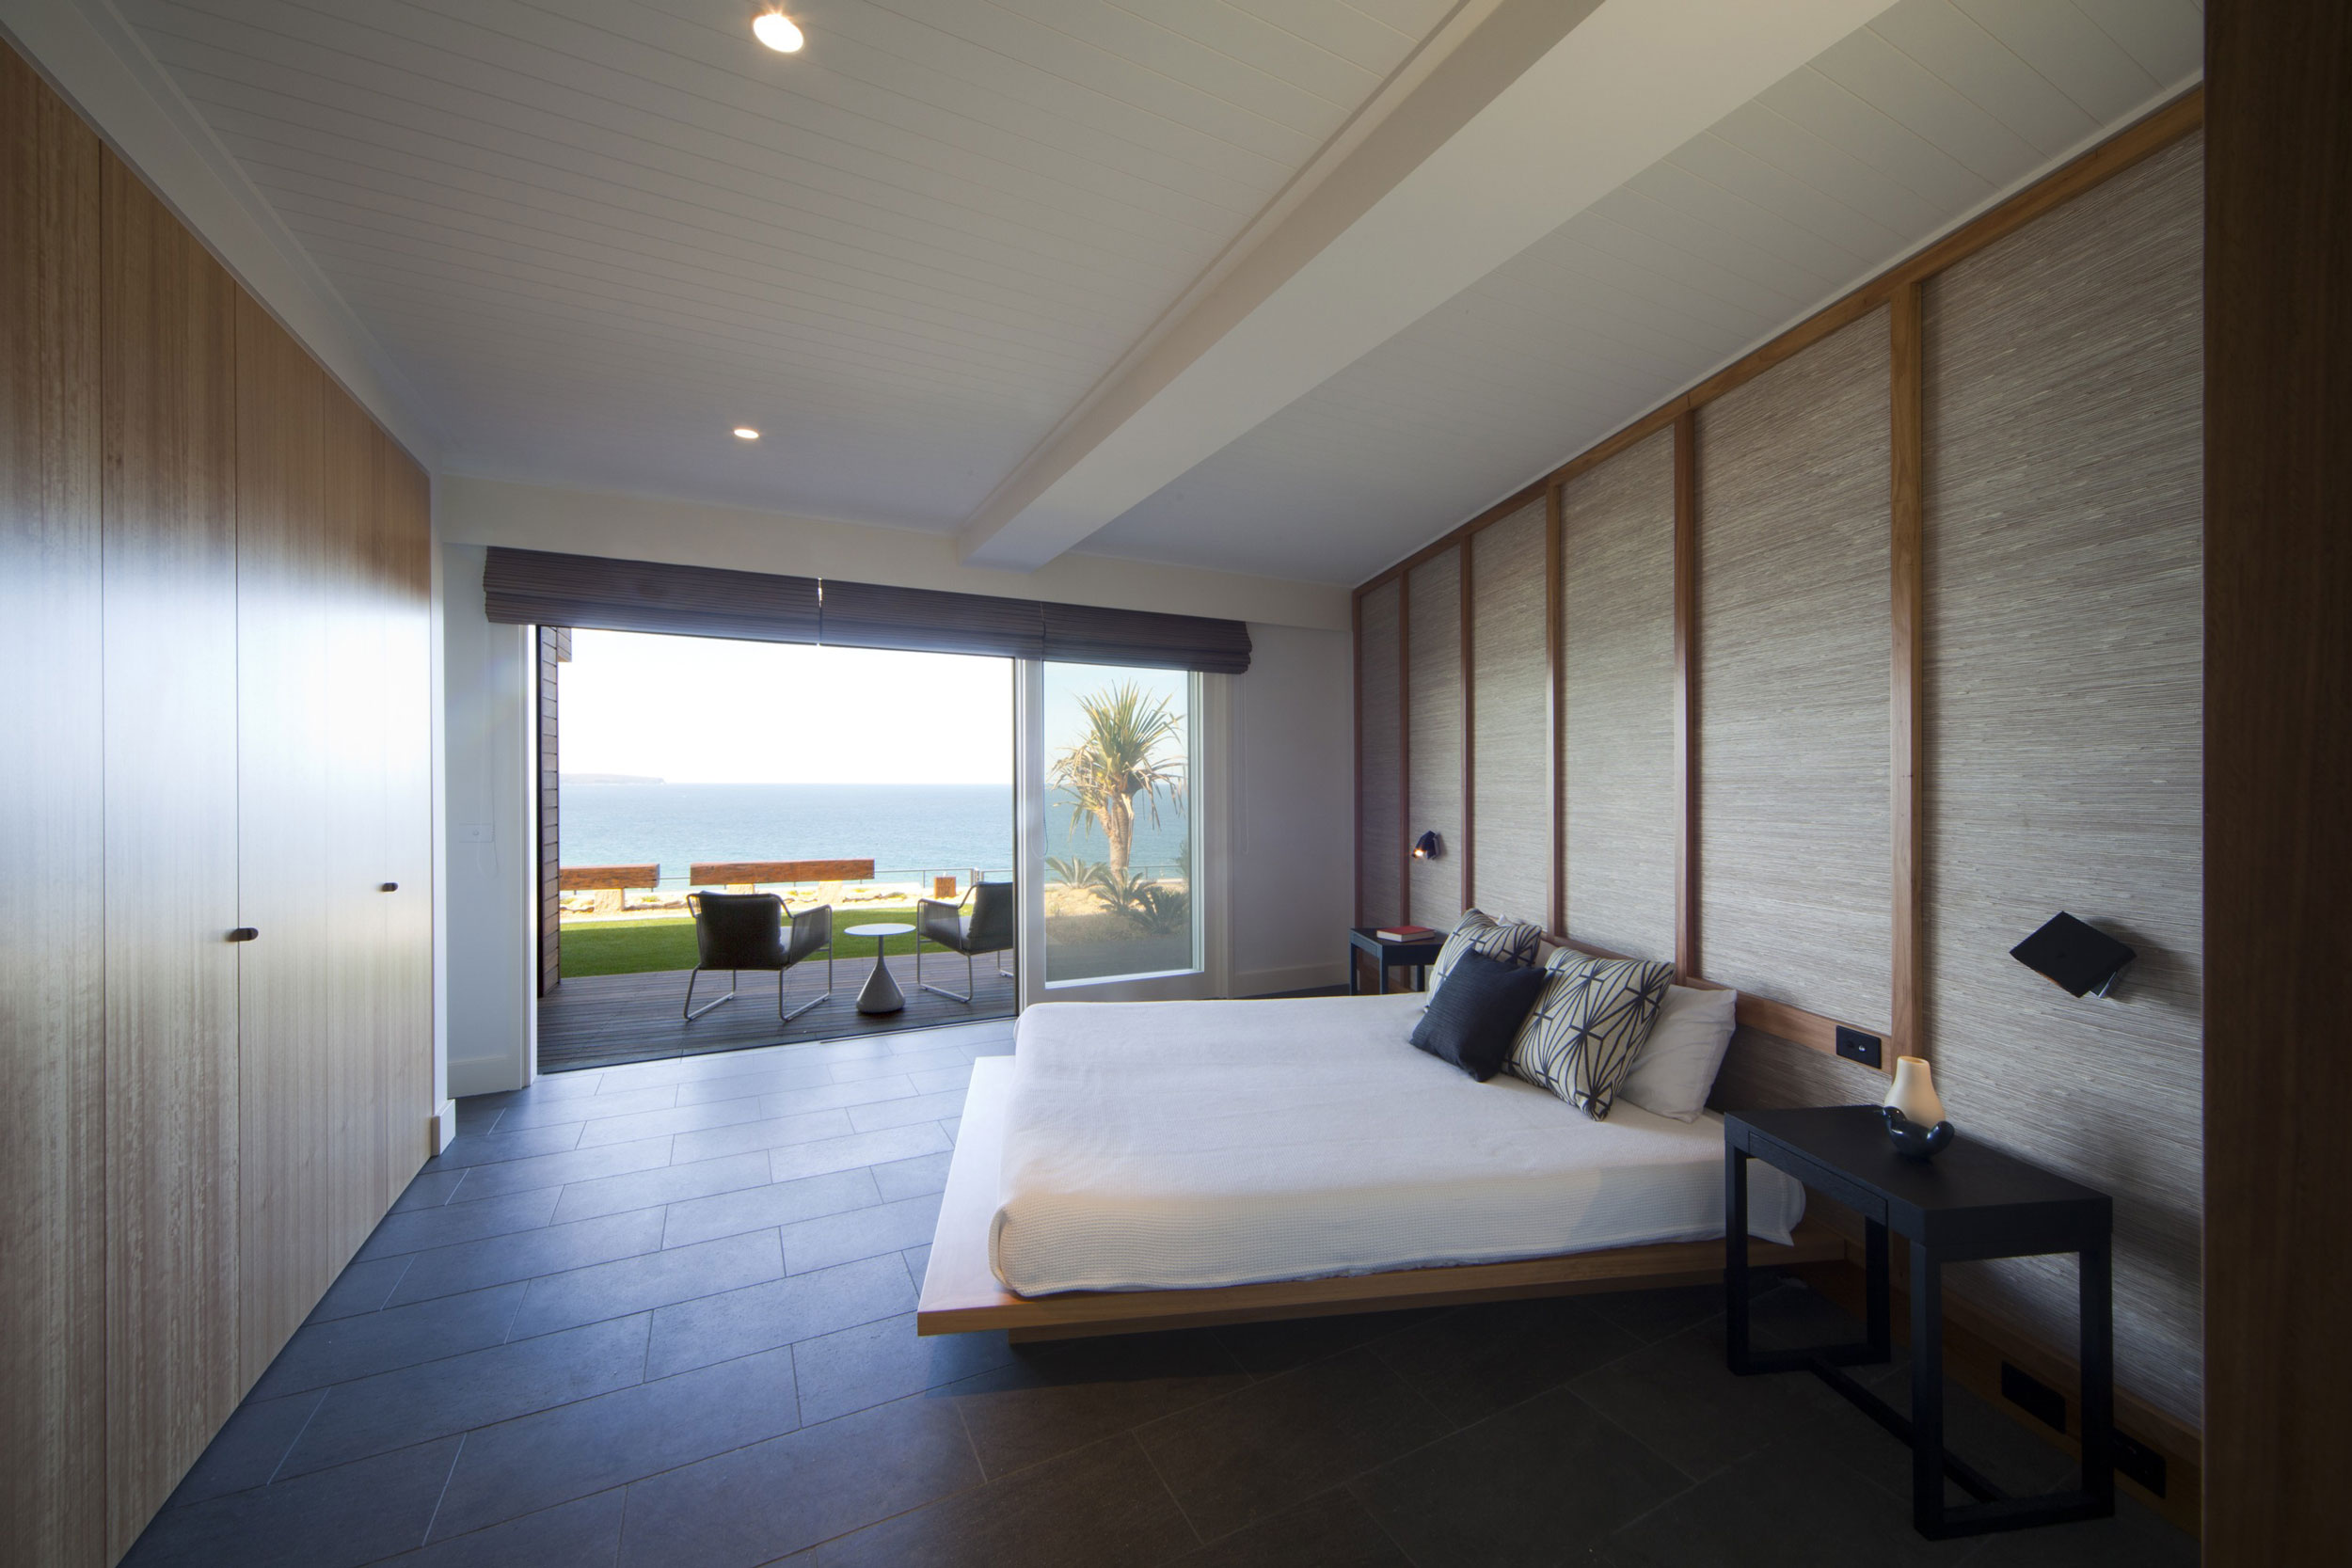 Private Residence by Pike Withers Interior Architecture (12)